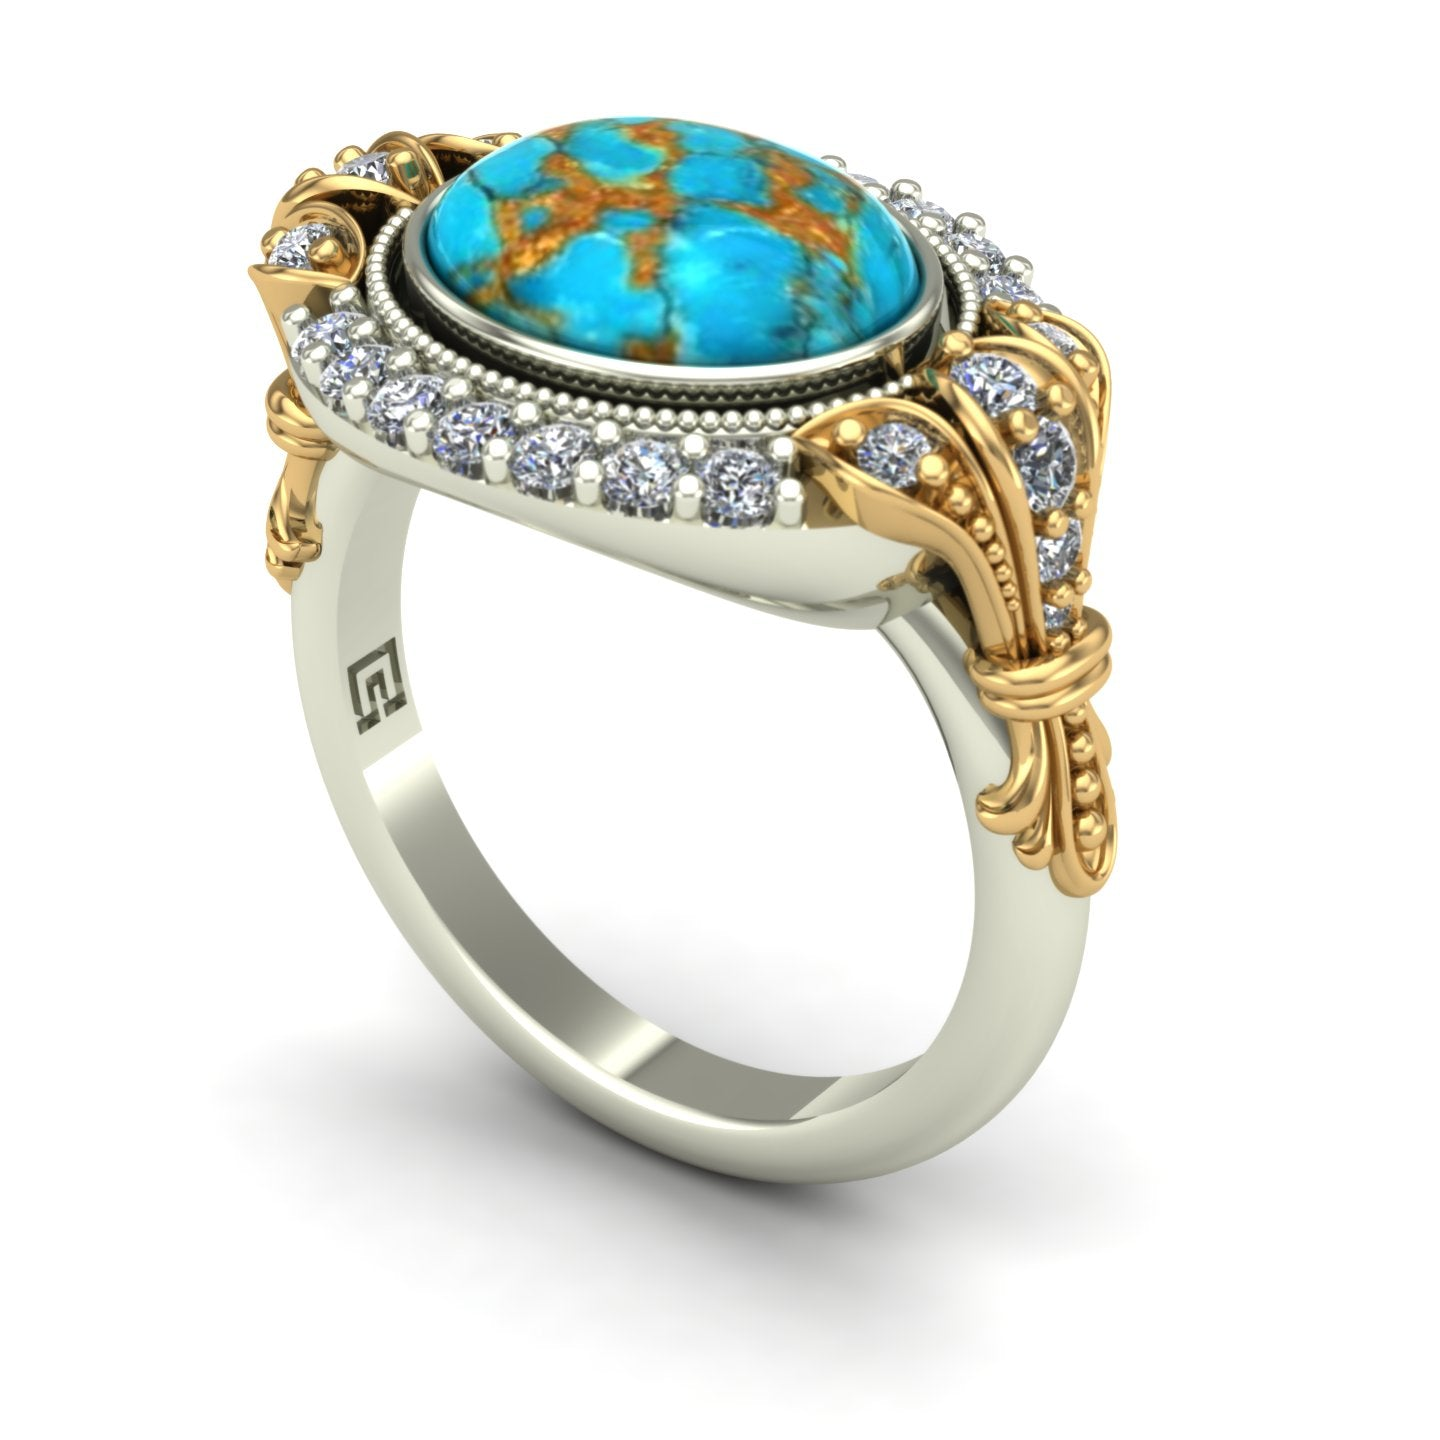 Turquoise and diamond ring in 14k yellow and white gold